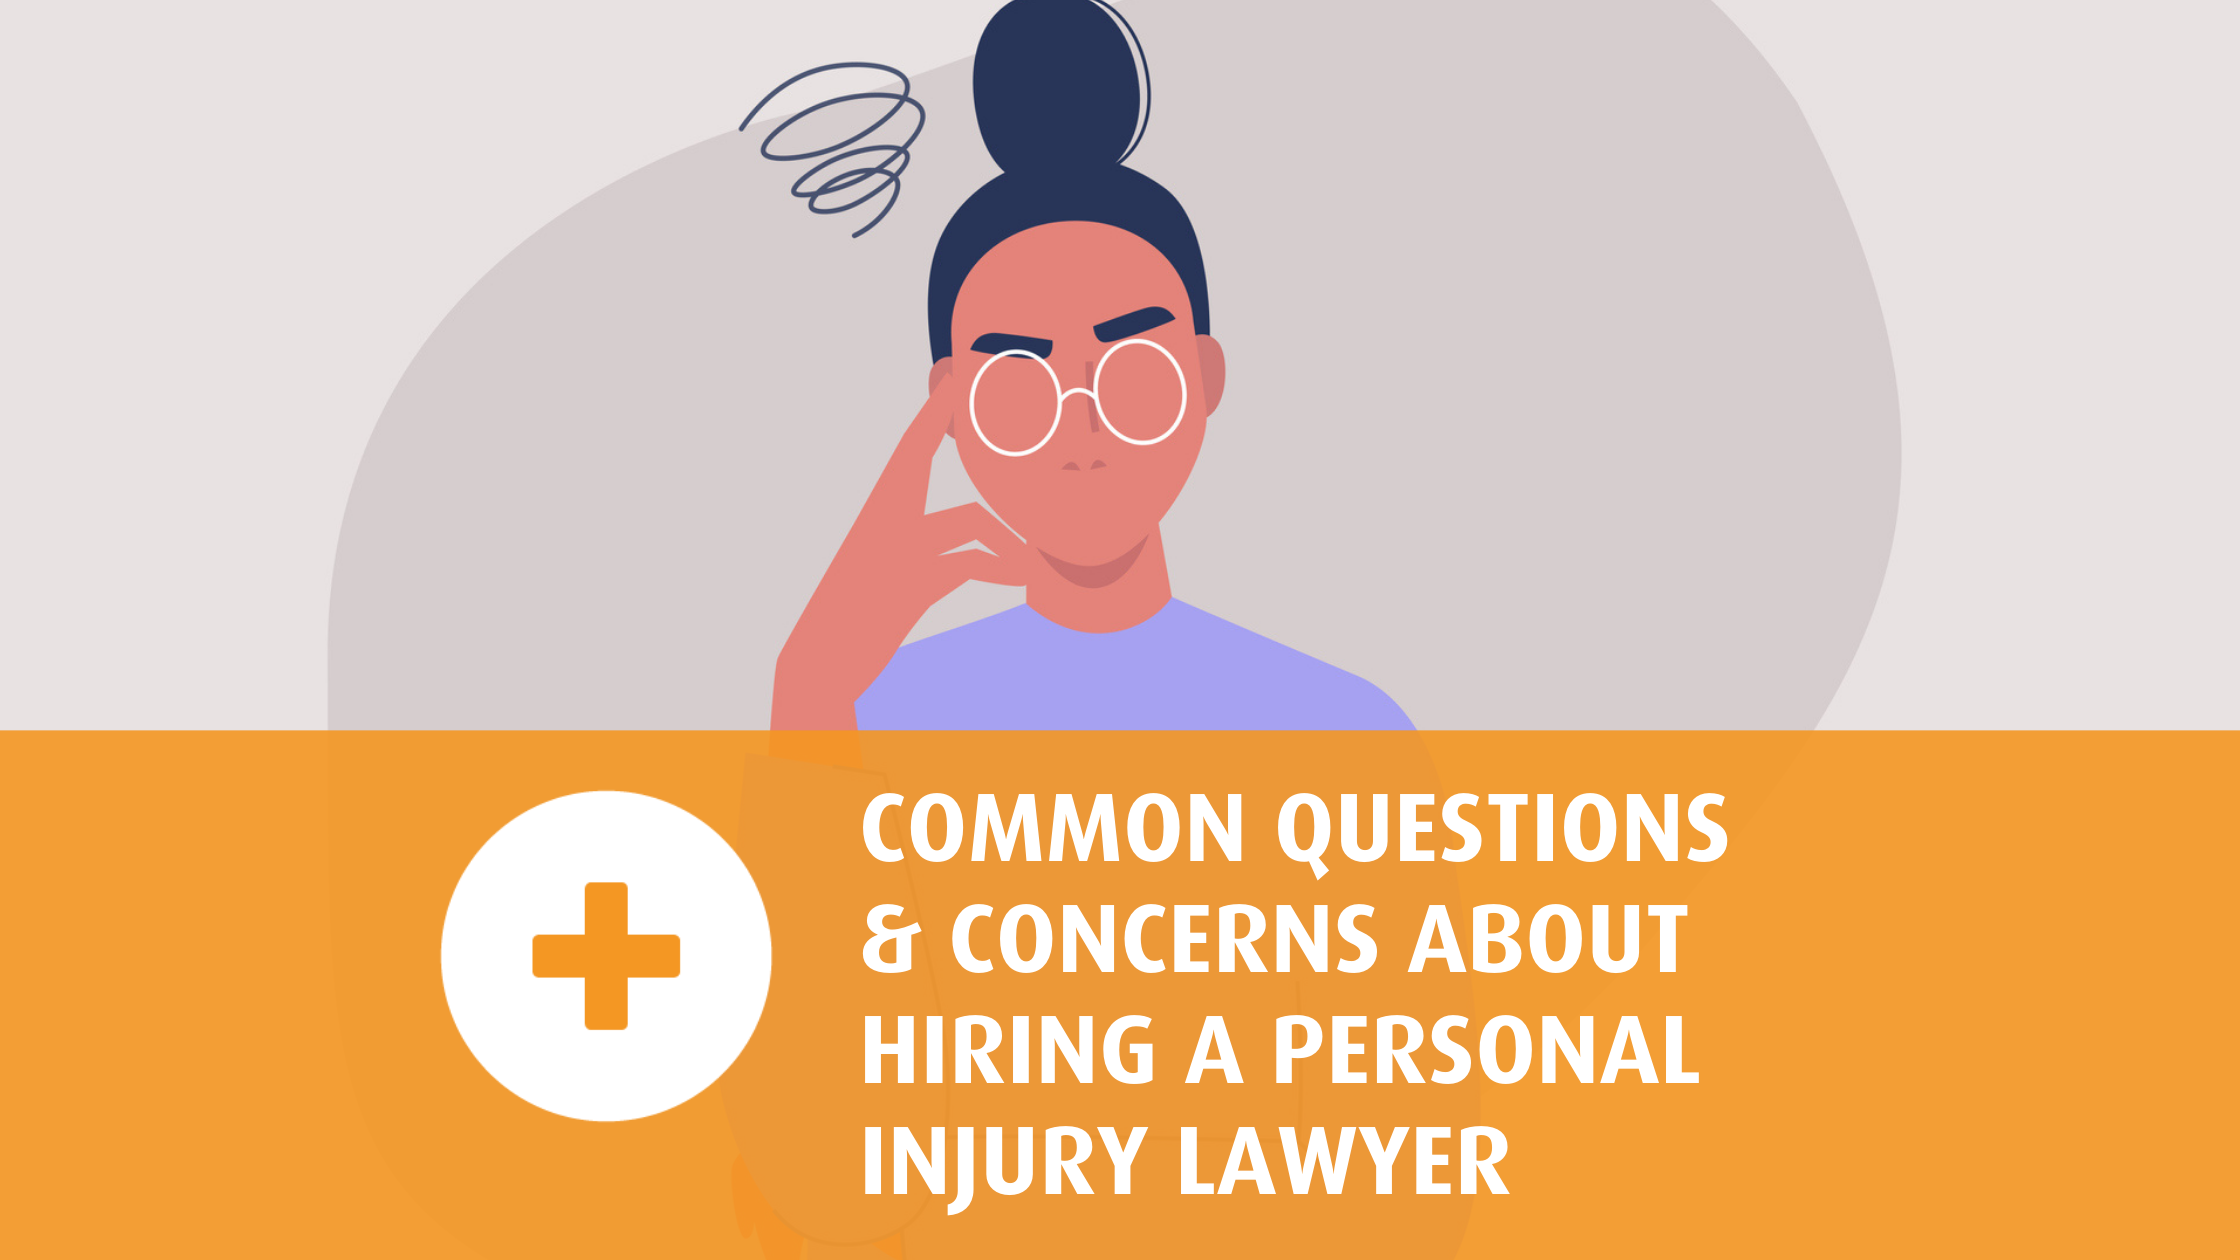 Common Questions & Concerns About Hiring A Personal Injury Lawyer Stringam Fort McMurray Grande Prairie Brooks Lethbridge Medicine Hat Swift Current Beaverlodge Alberta